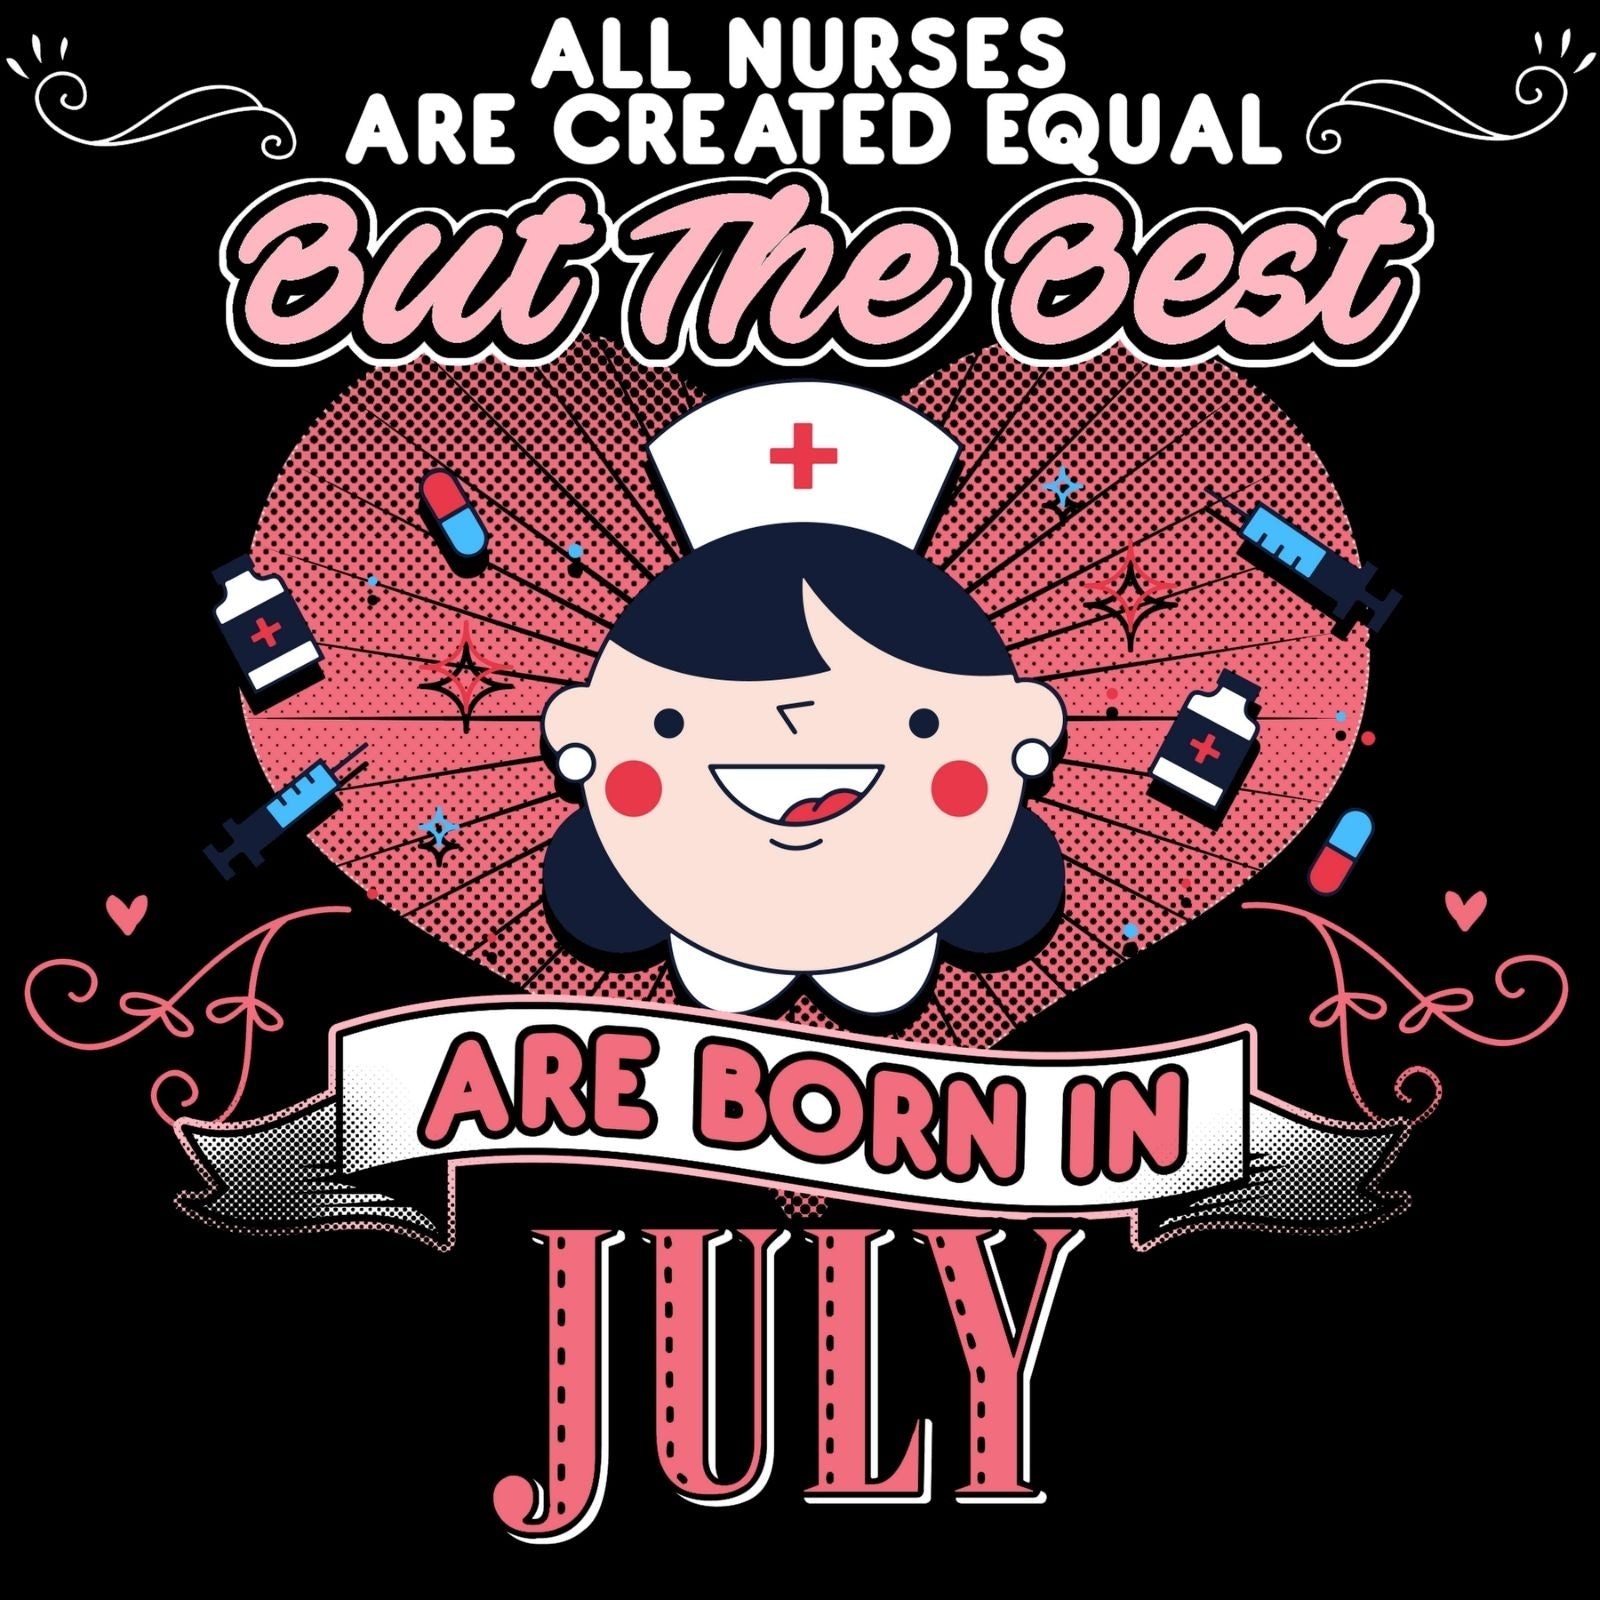 All Nurses Are Created Equal But The Best Are Born in JULY - Bastard Graphics